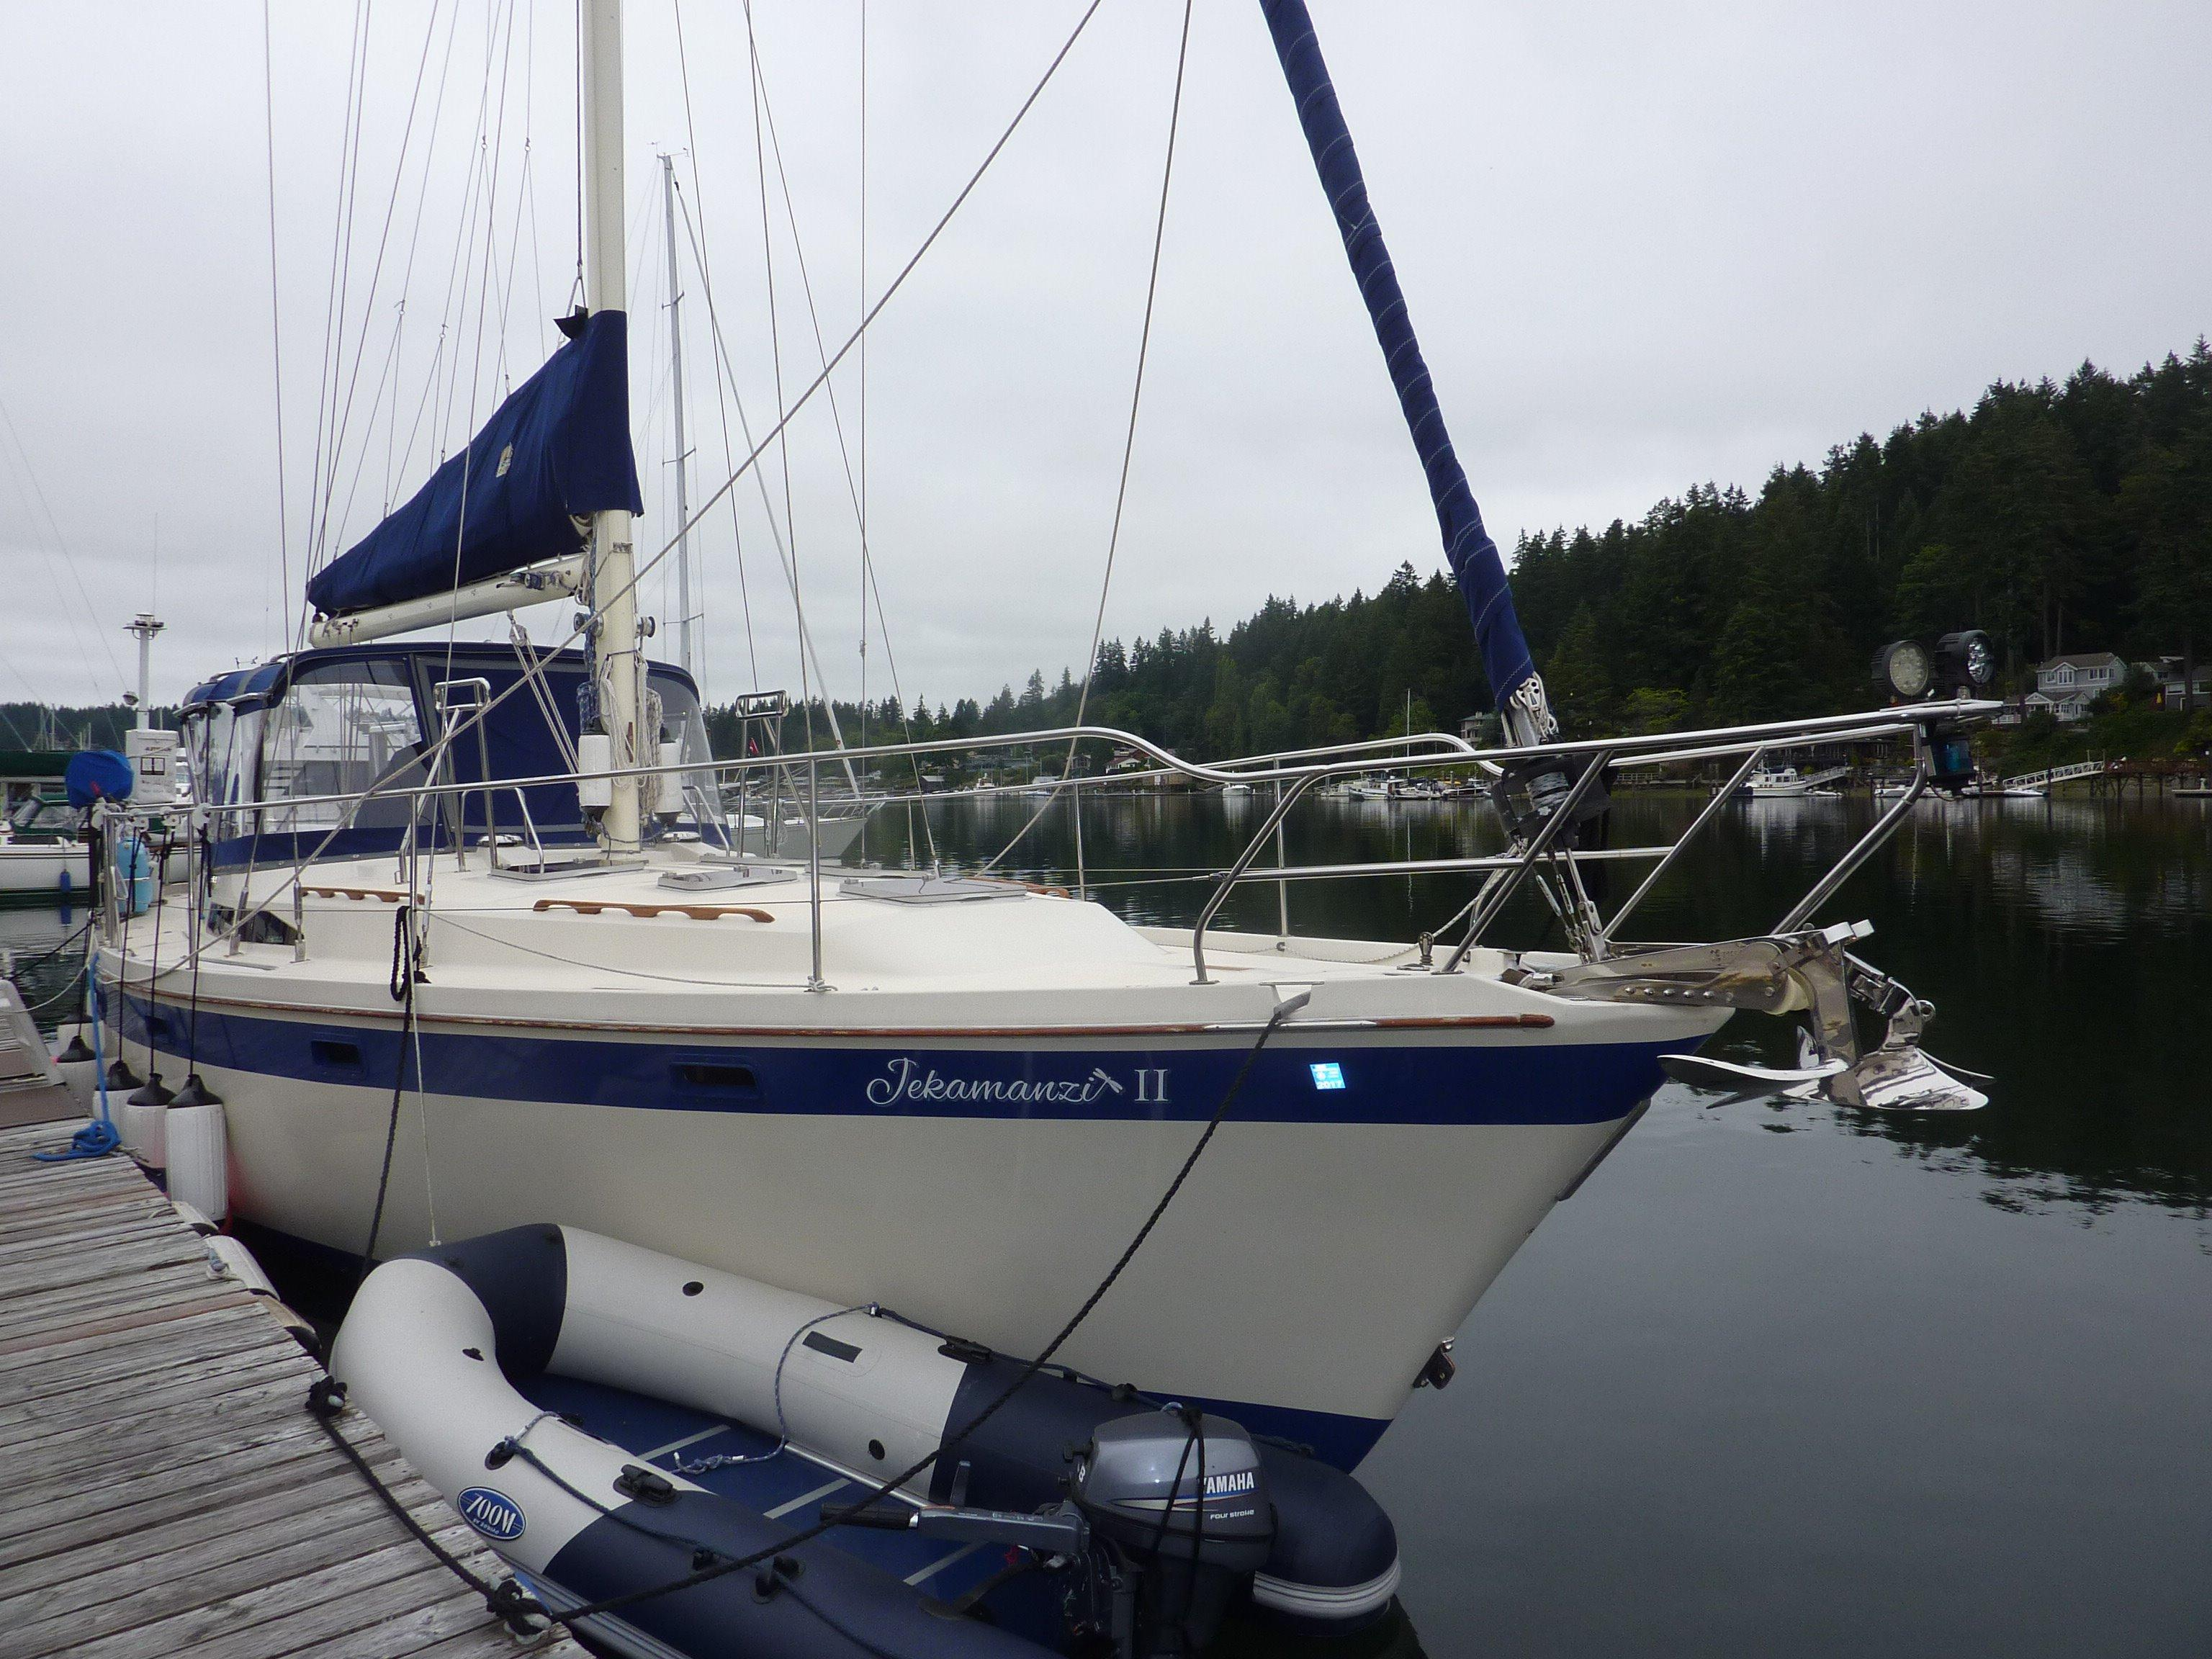 Gig Harbor (WA) United States  city pictures gallery : 1987 Irwin CC Sail Boat For Sale www.yachtworld.com